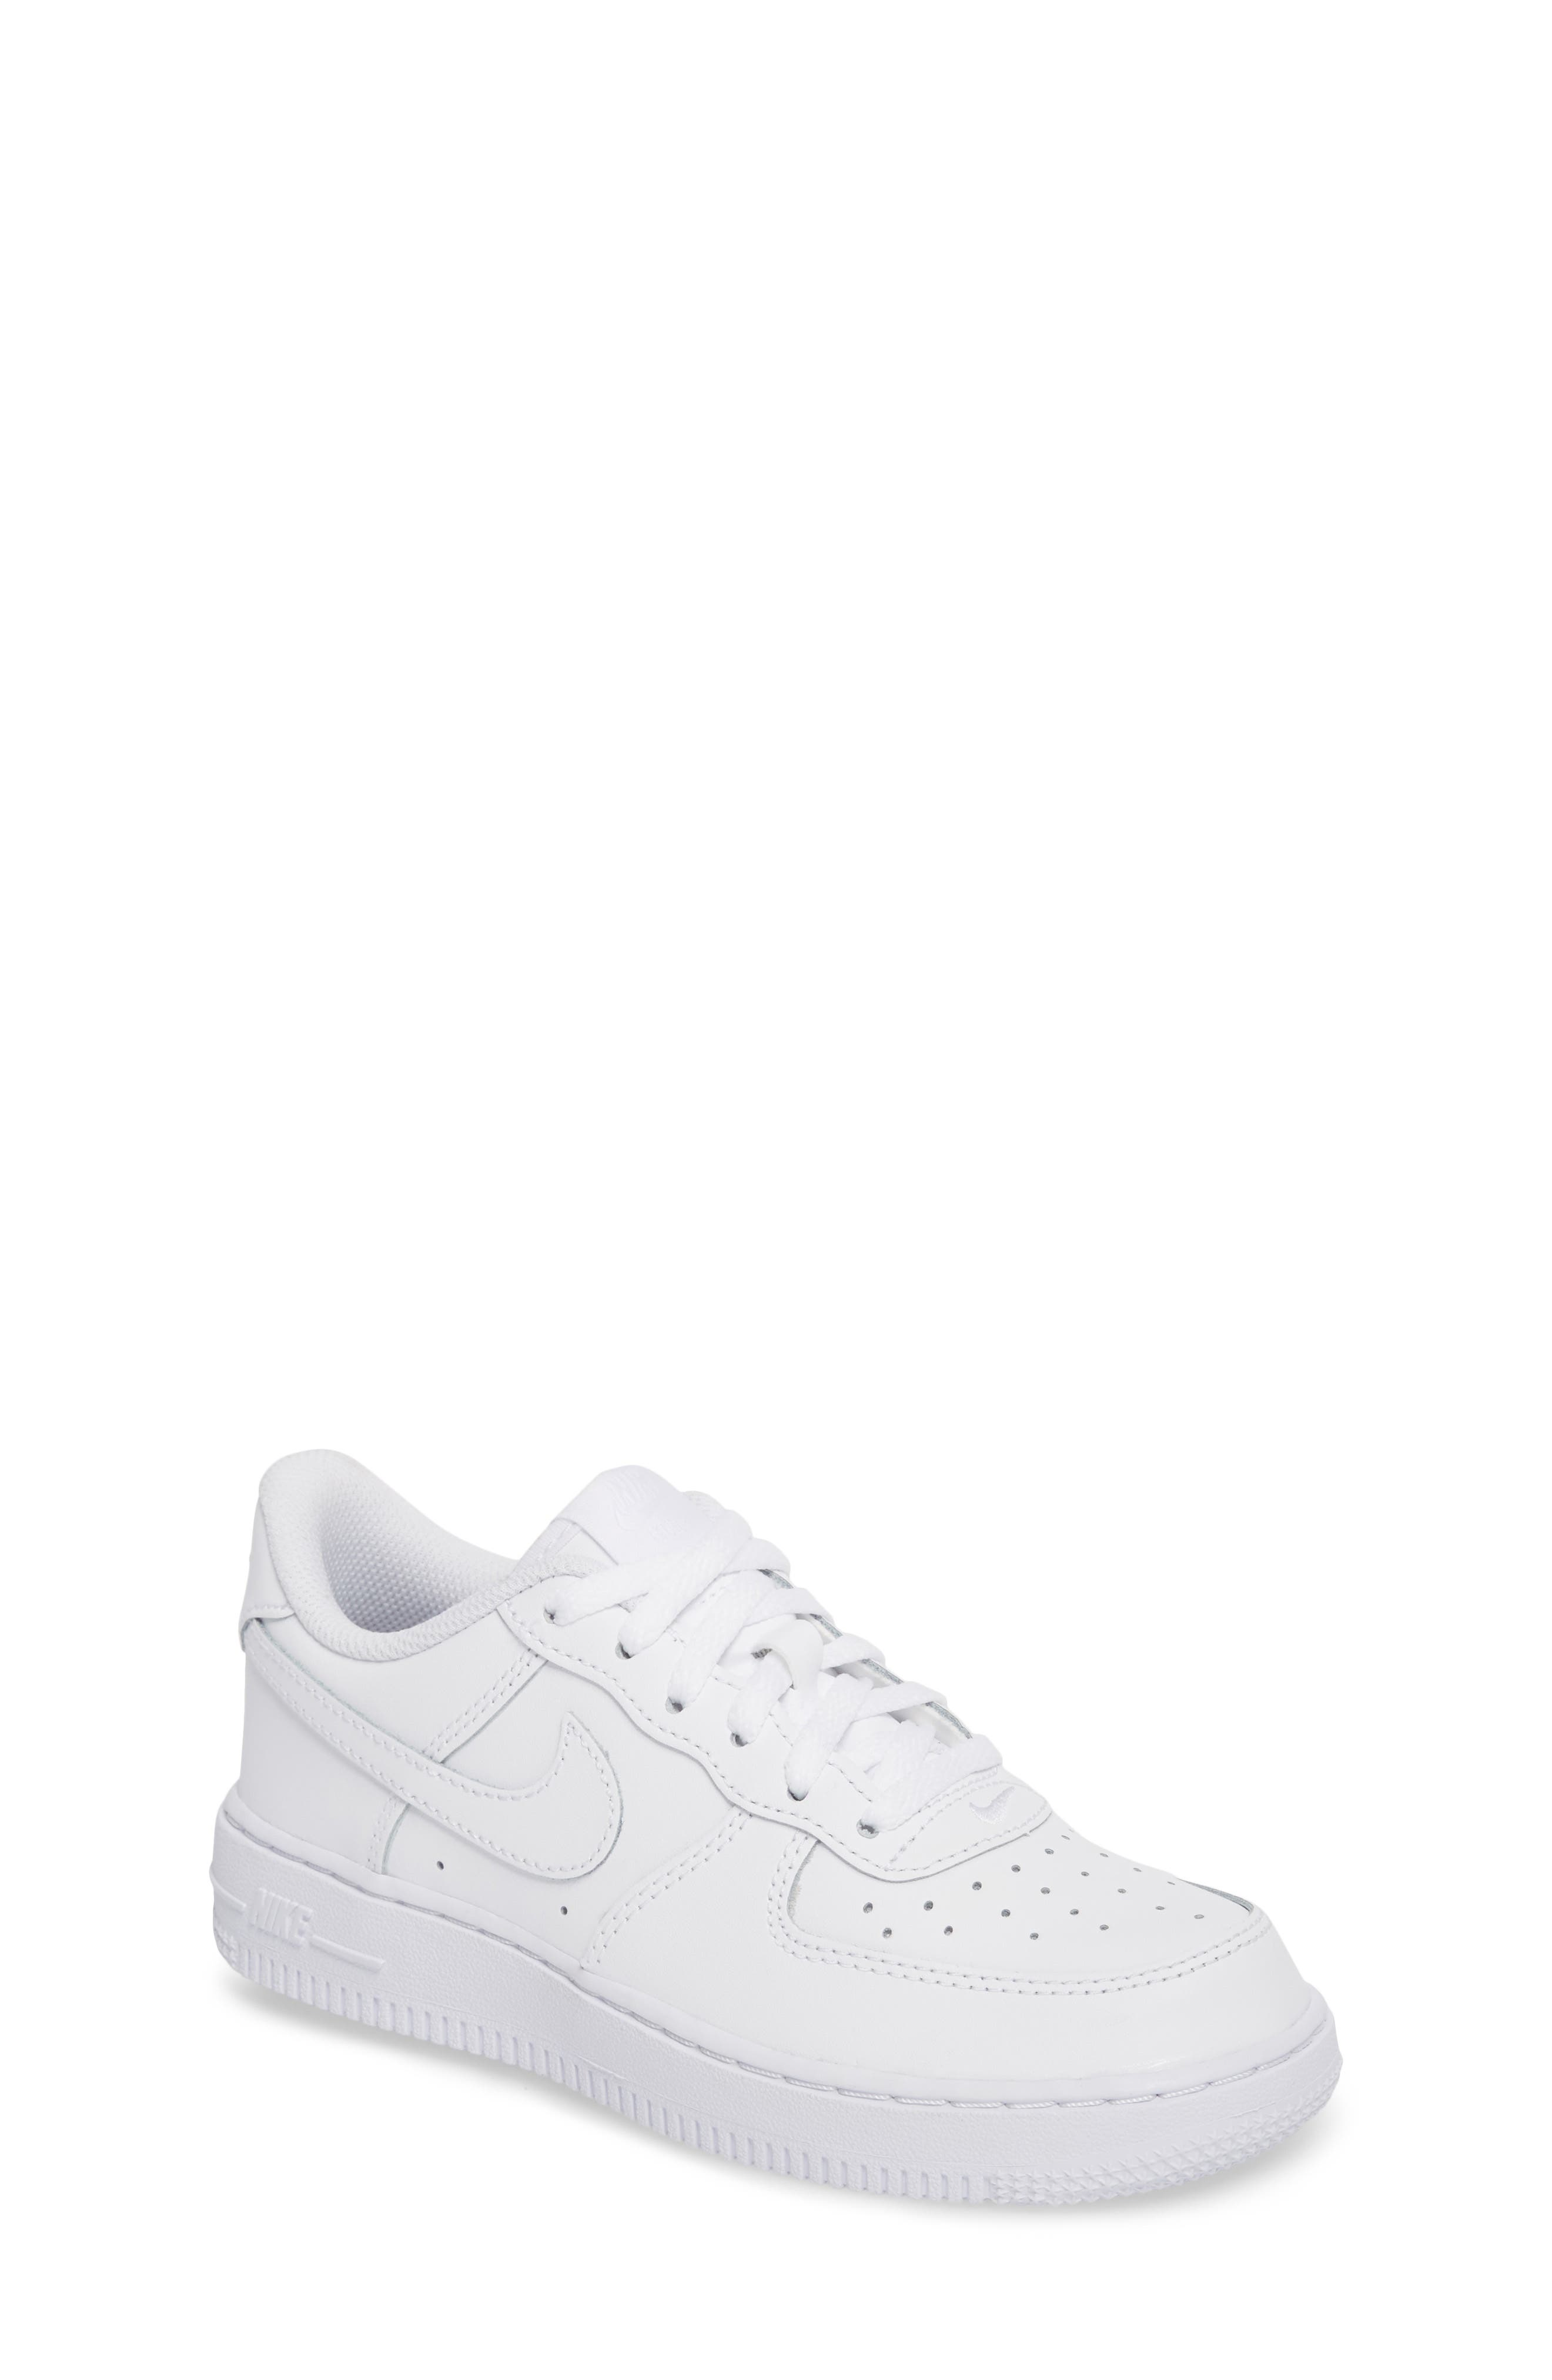 Air Force 1 Sneaker,                         Main,                         color, WHITE/ WHITE